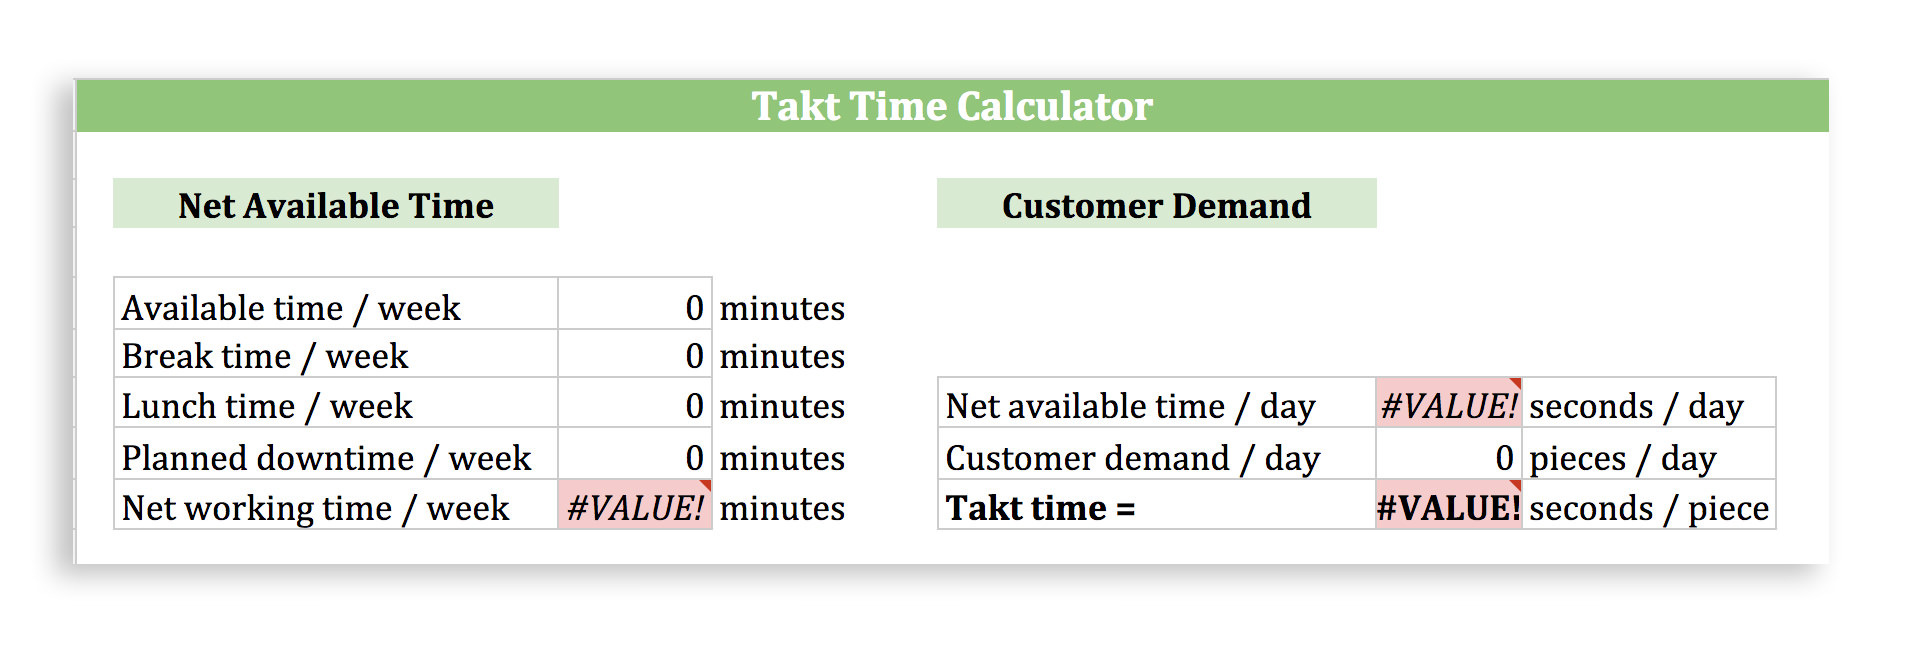 Takt Time Calculator